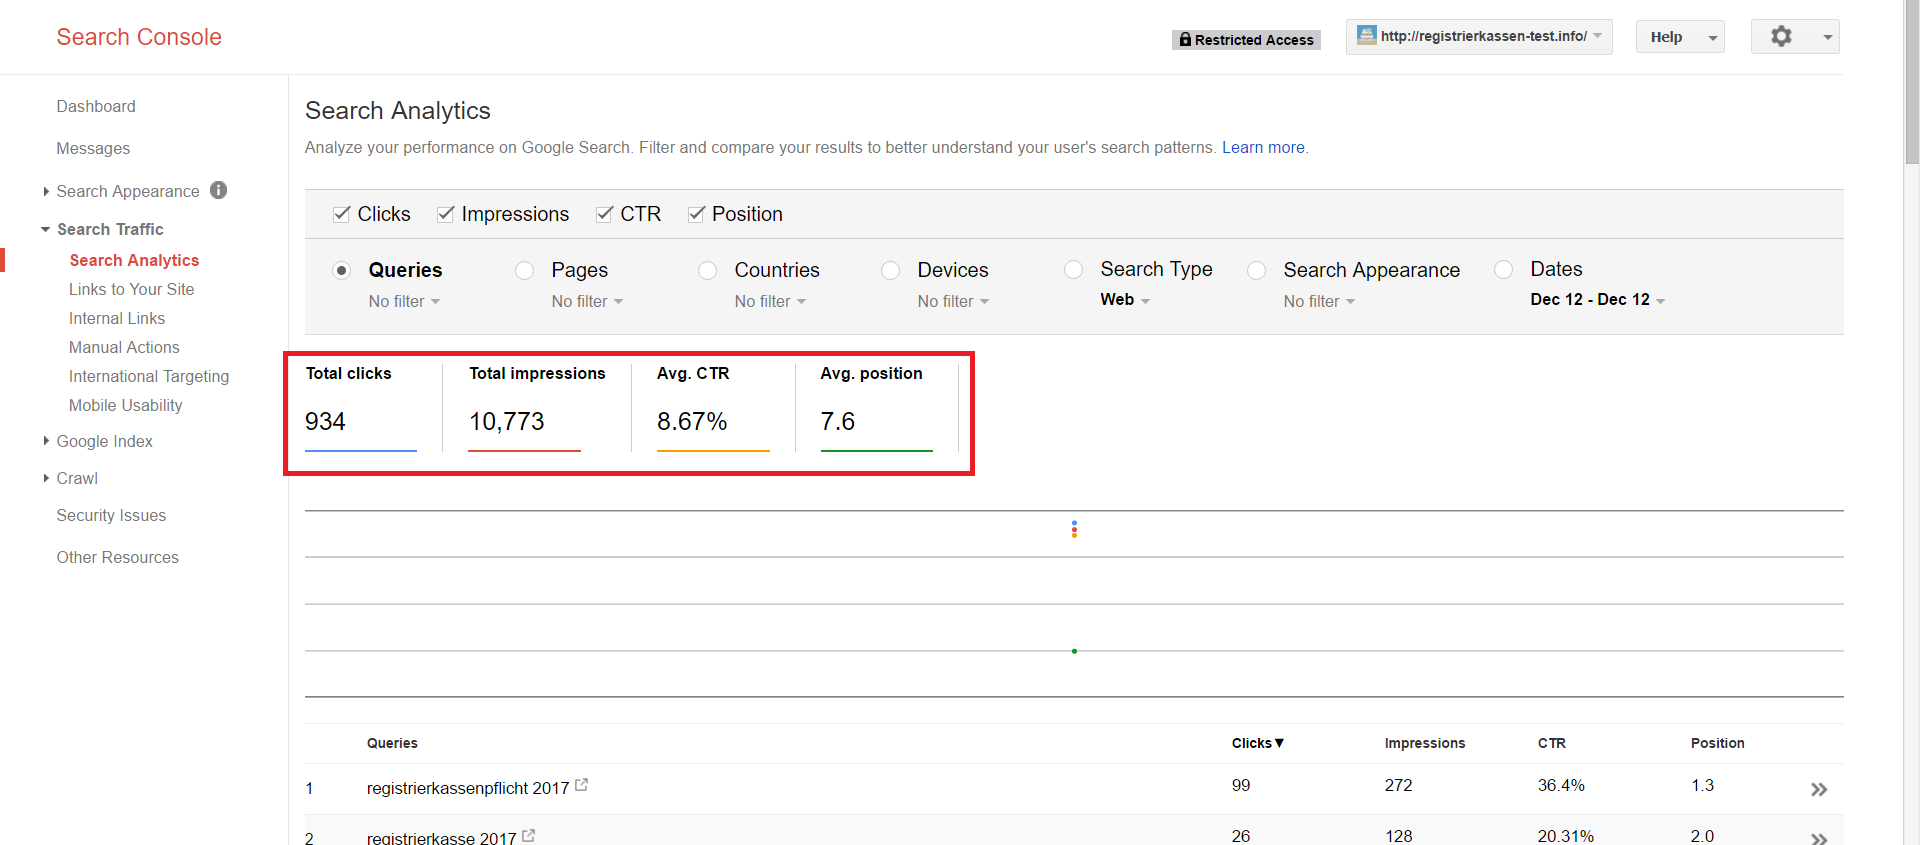 Google Search Console Review: Mystery Totals